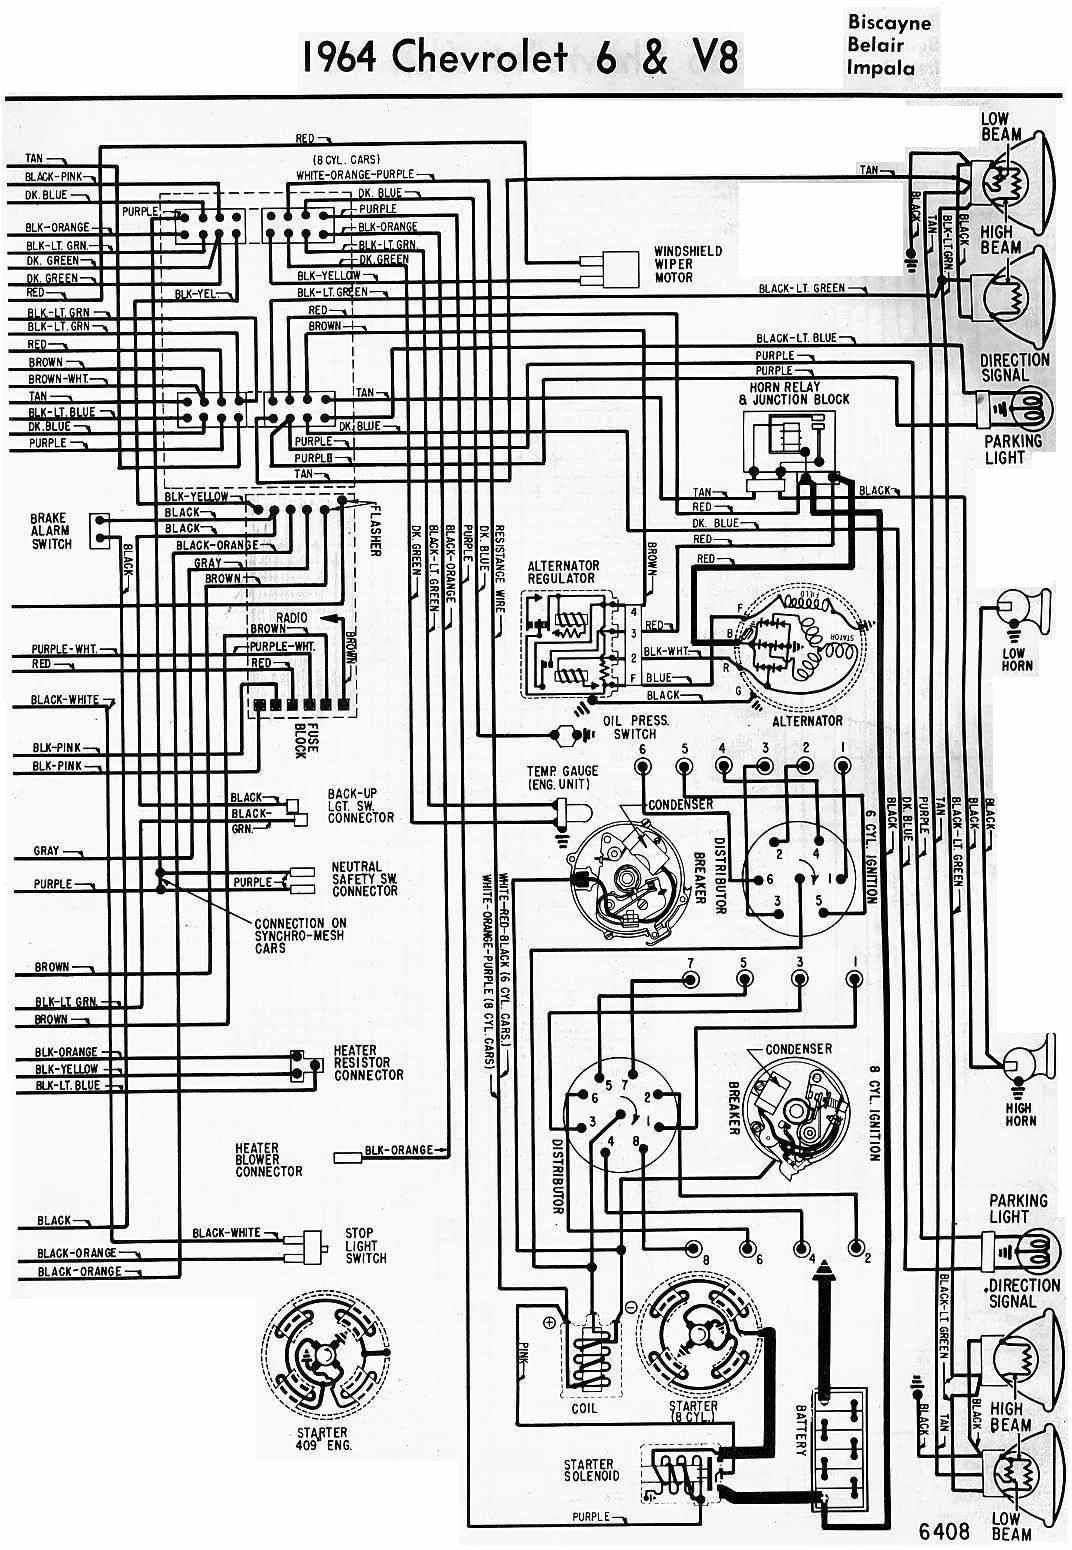 small resolution of 64 impala wiring diagram wiring diagrams 64 impala headlight wiring diagram